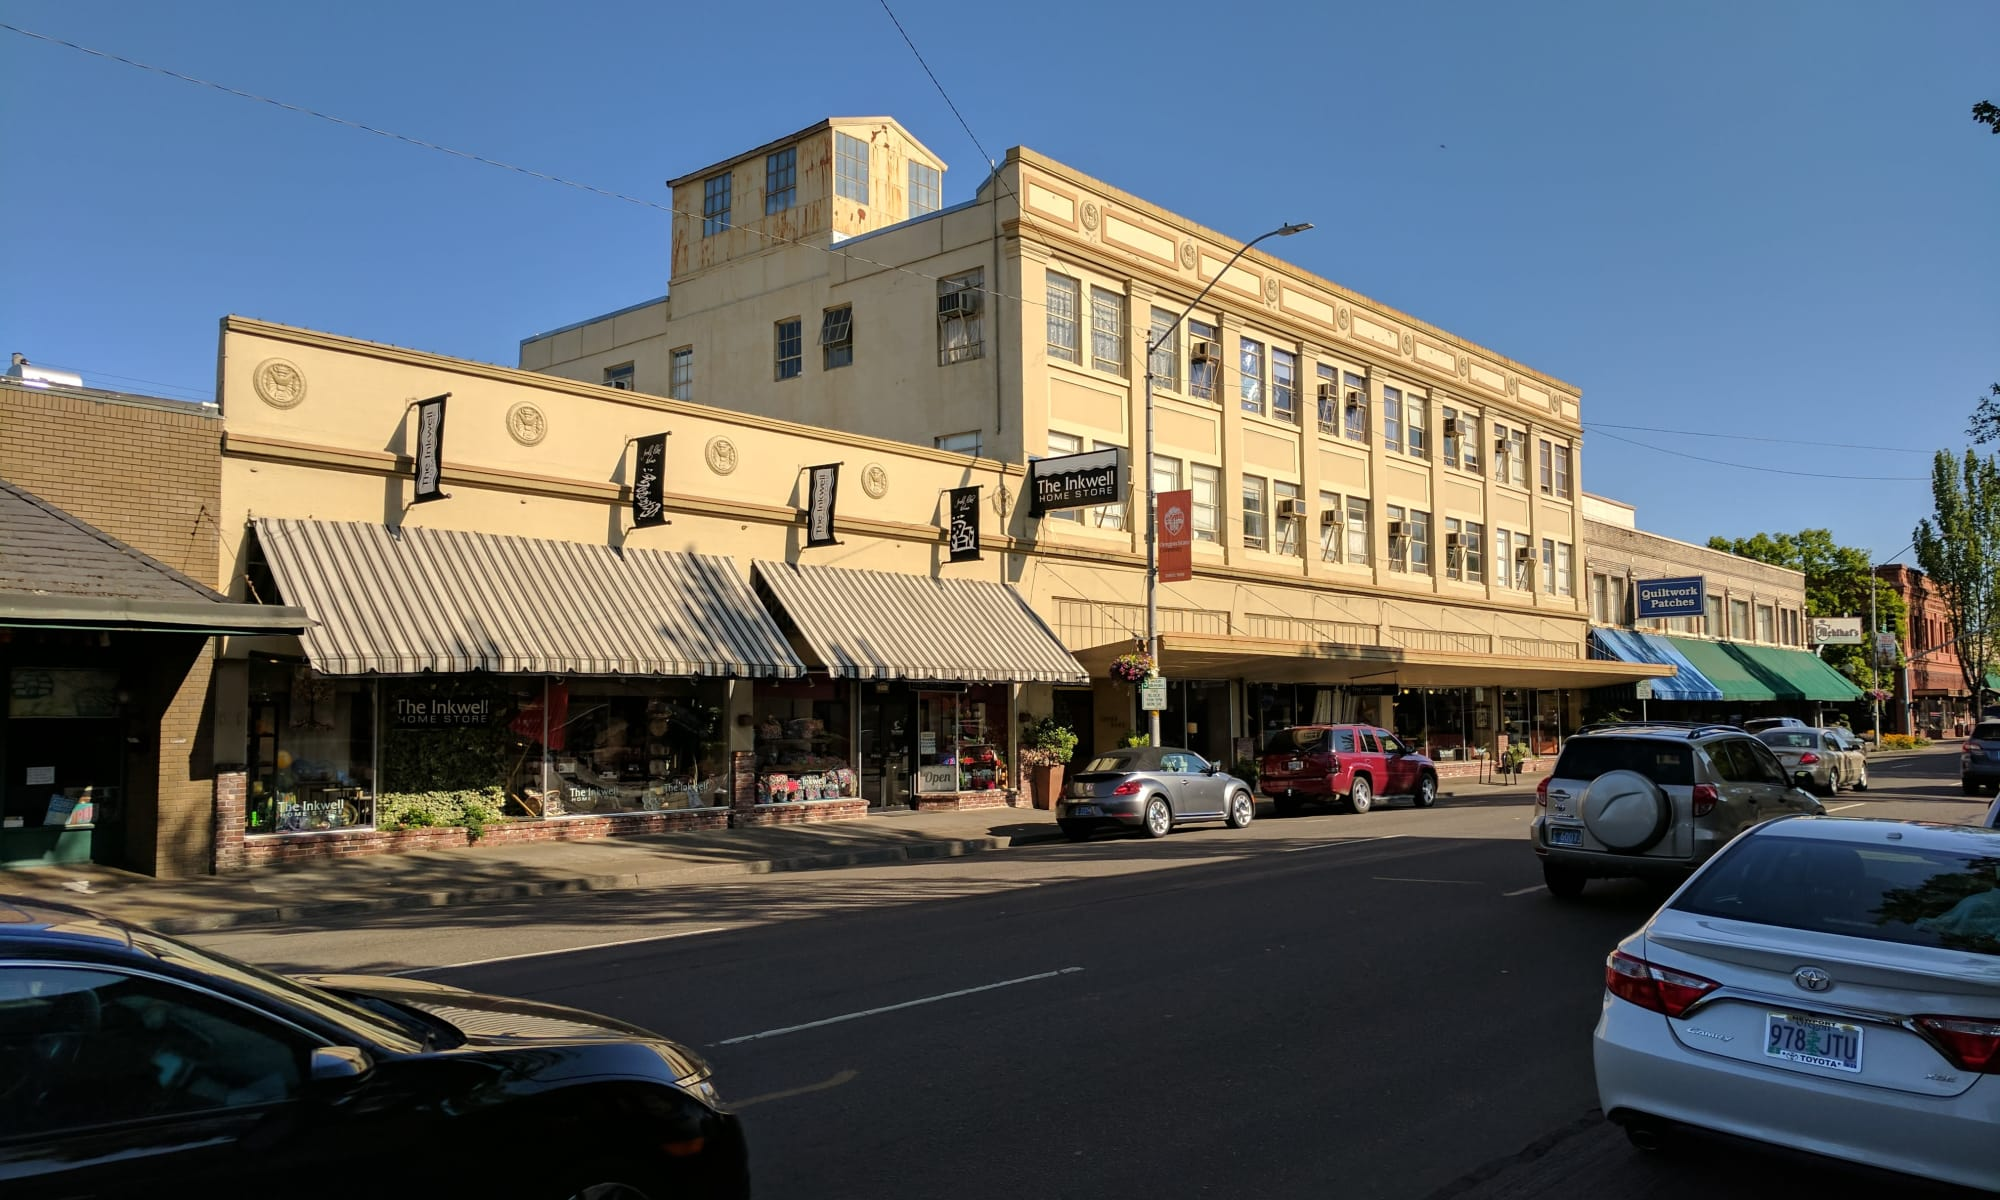 The Crees Building in Corvallis, Oregon